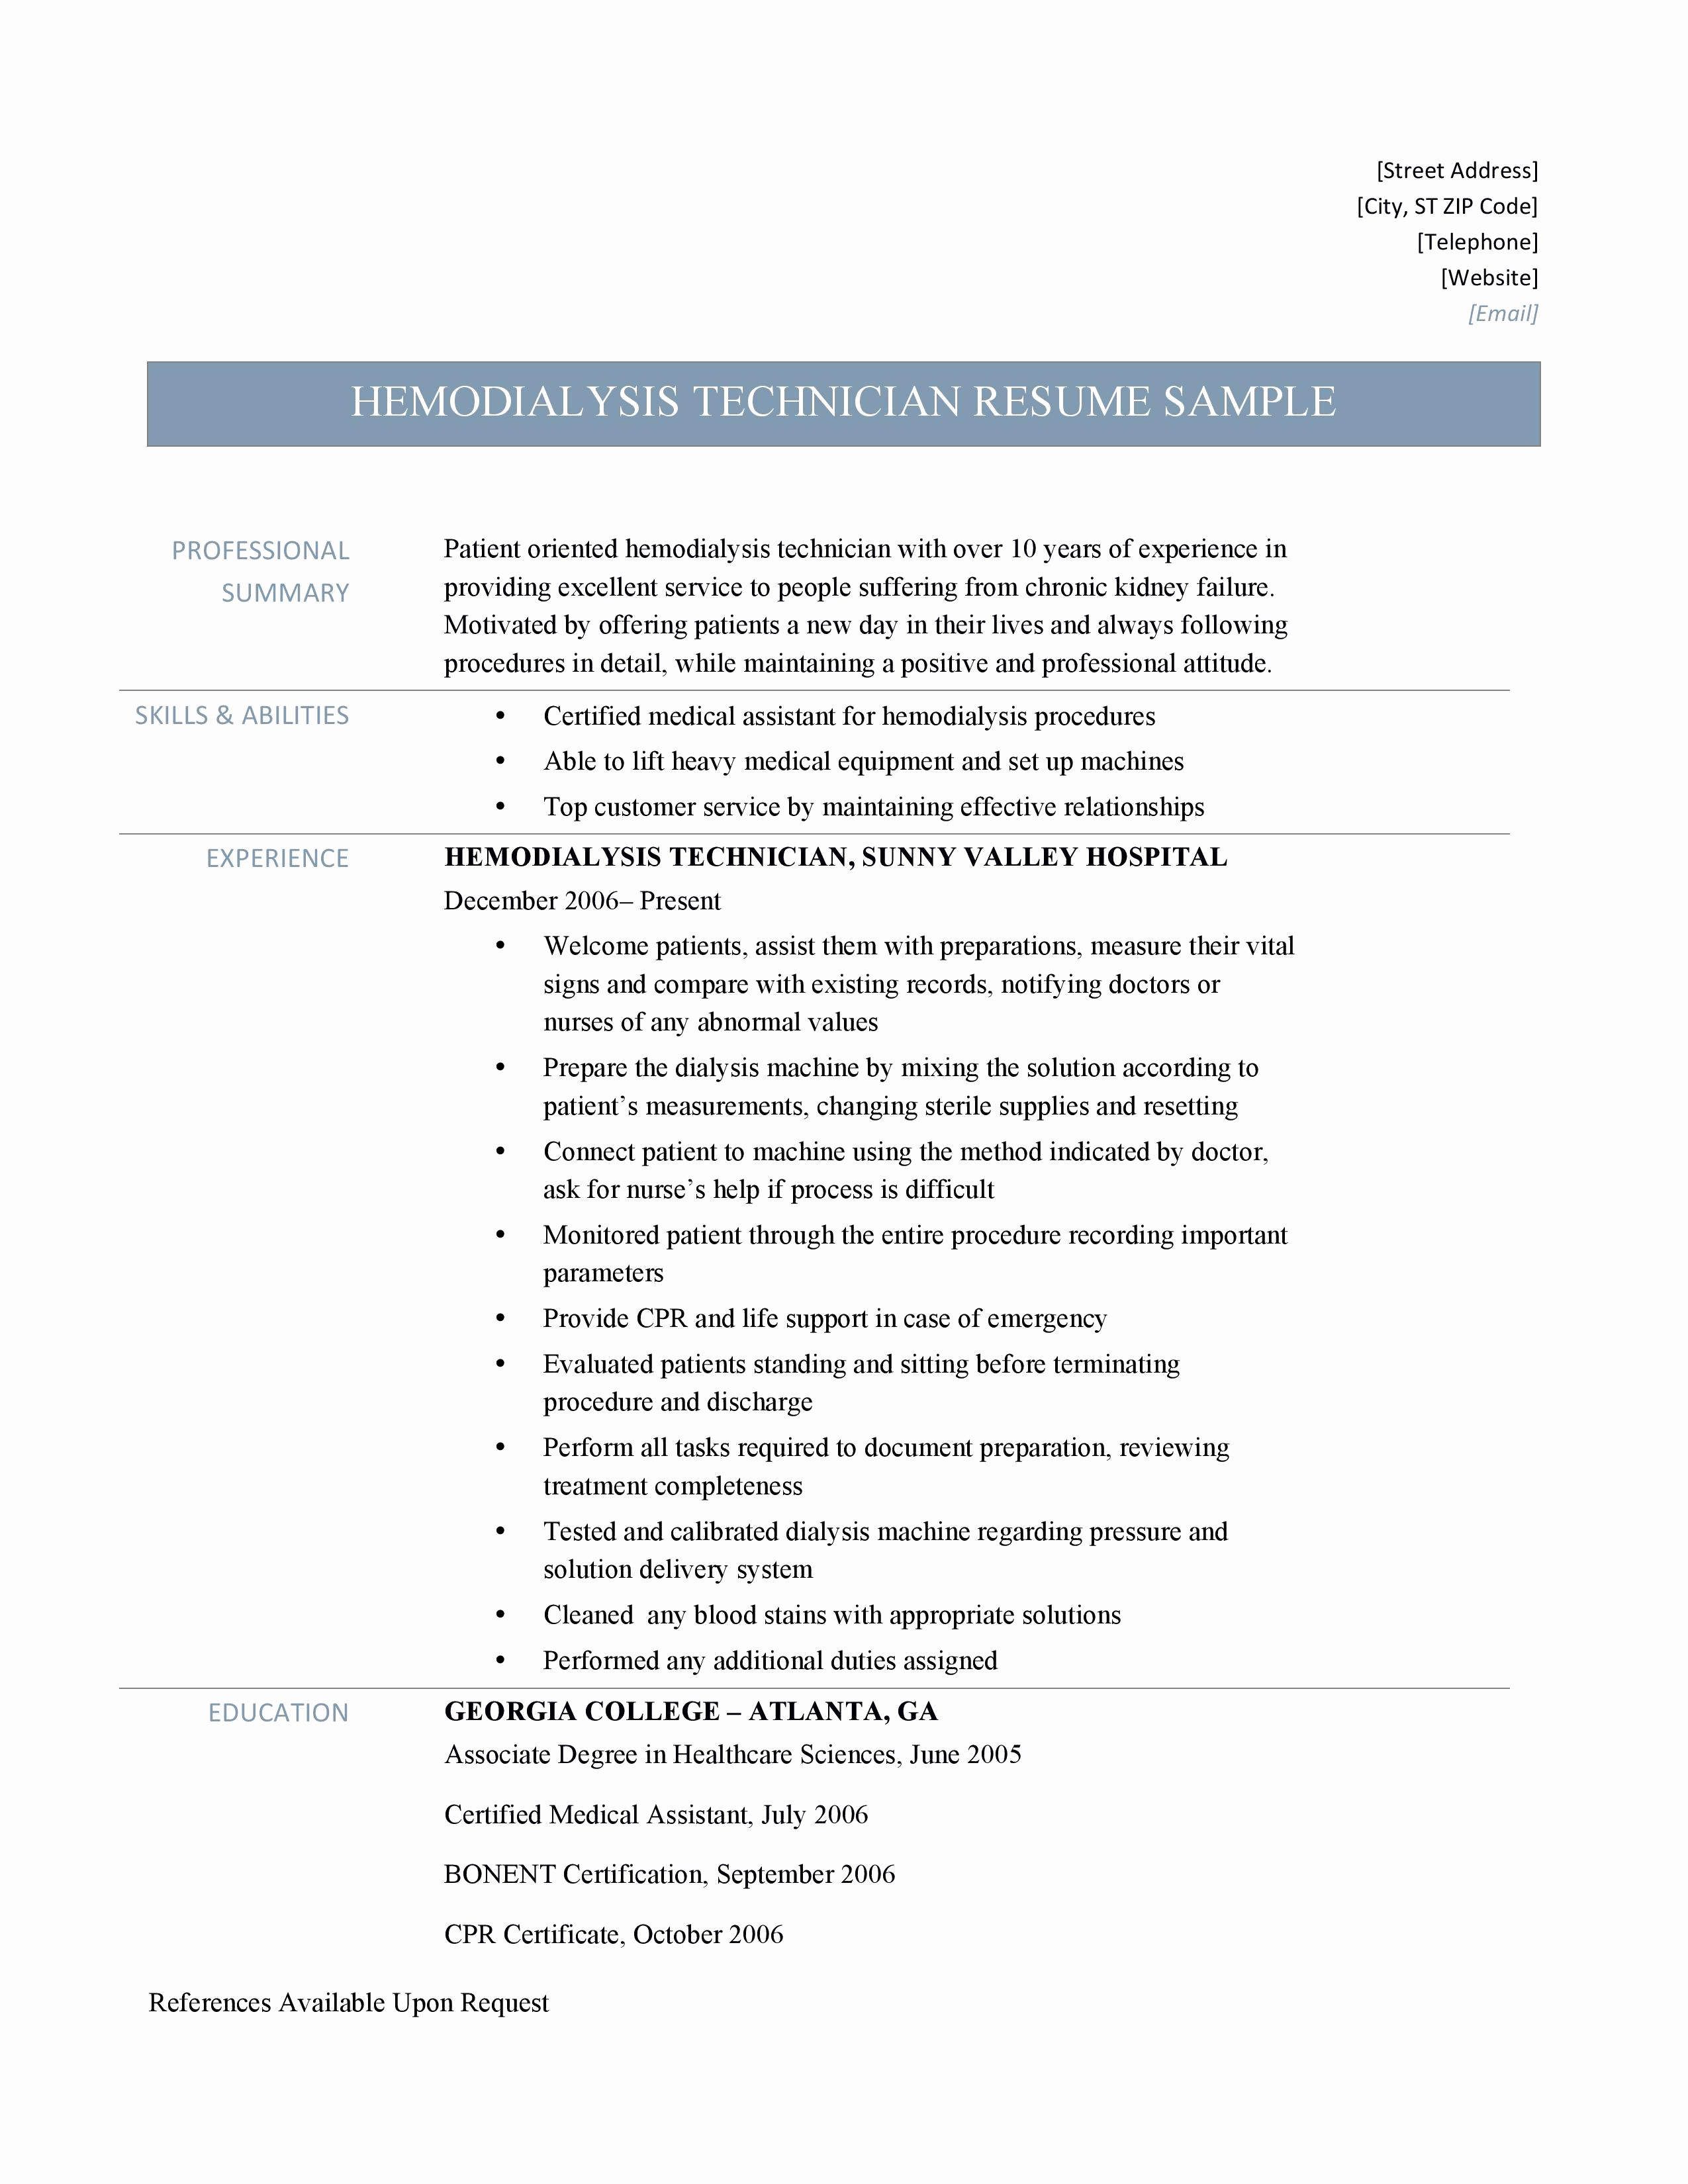 9 Dialysis Technician Resume Examples